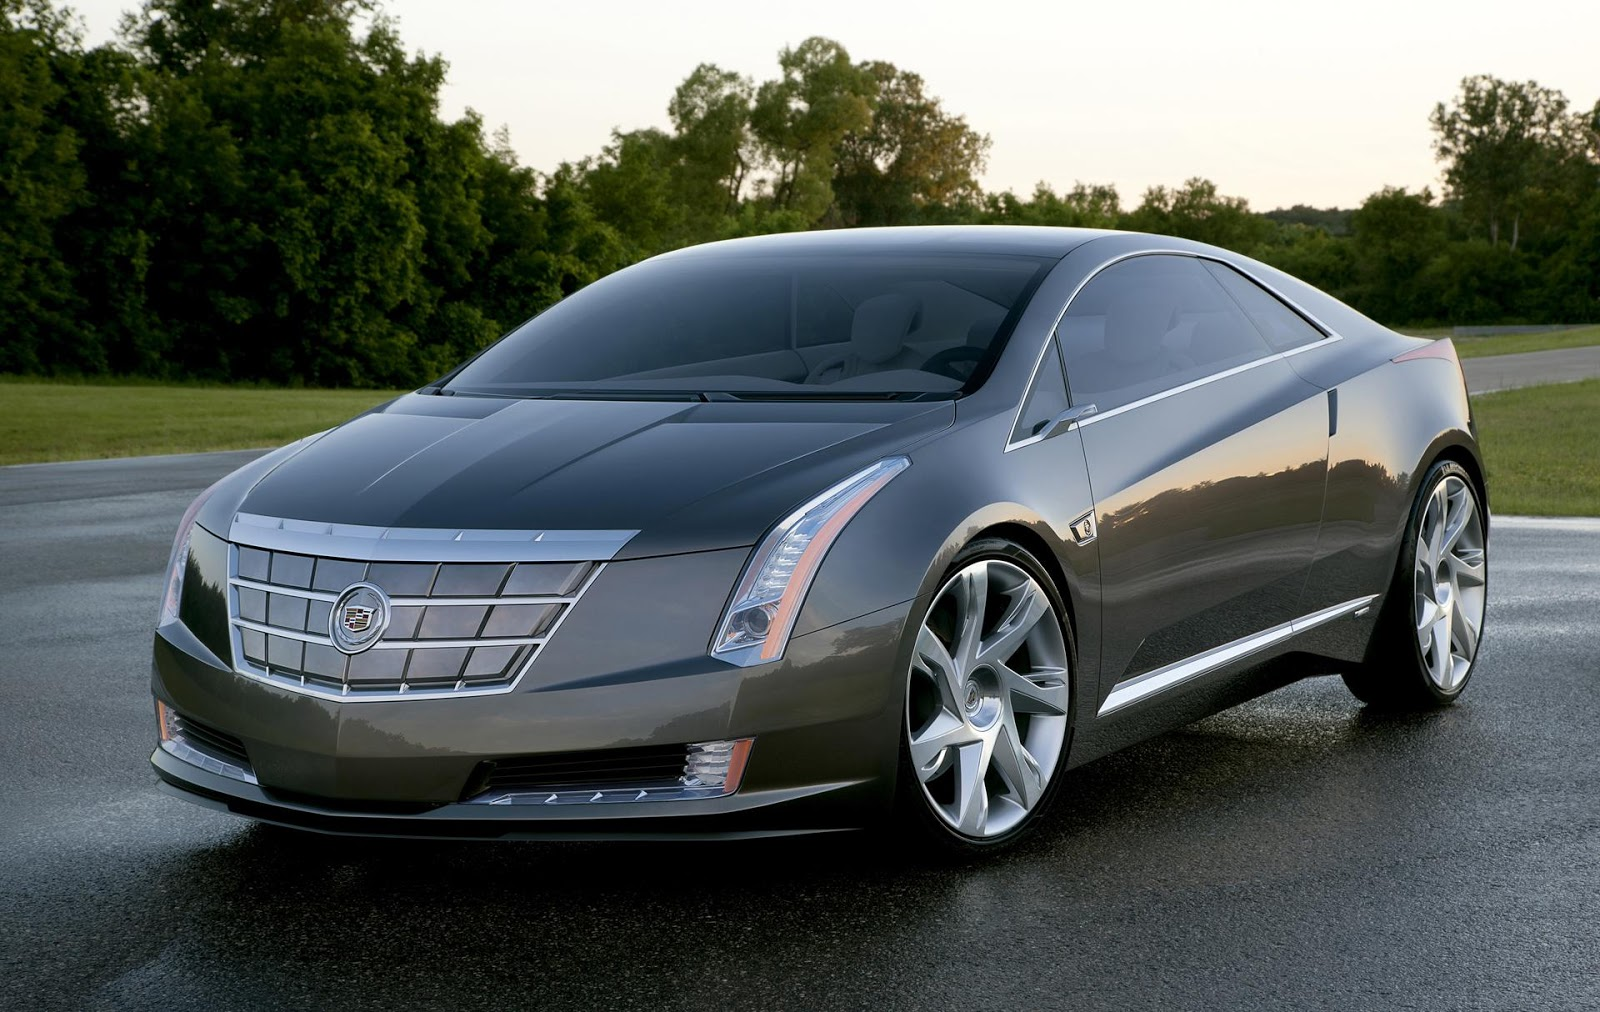 Green Car Decline Combined Hybrid Electric Sales Started Falling 2014 New Models Usa - small